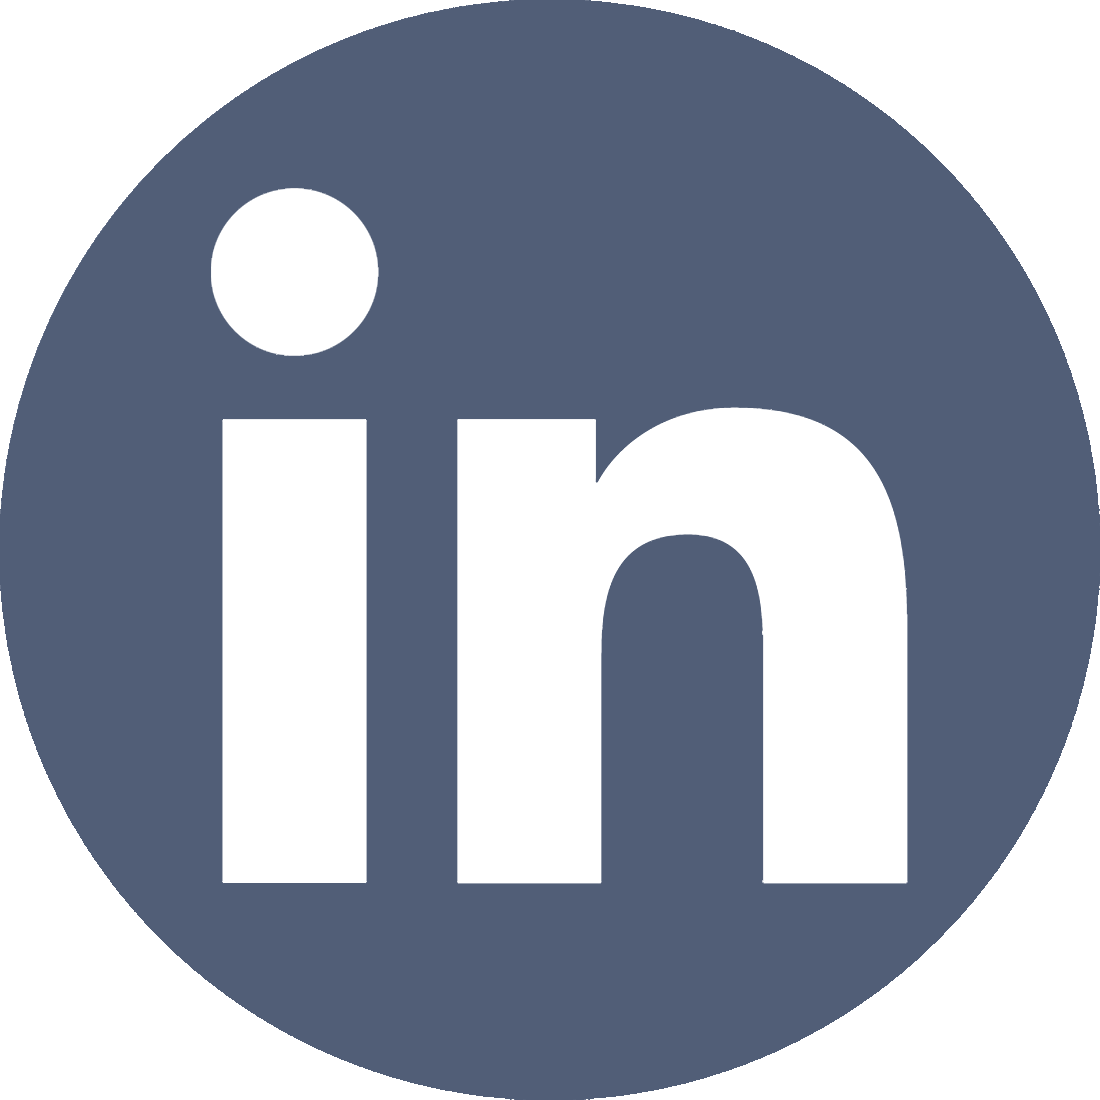 Linkedin Logo Vector Png Free Download.